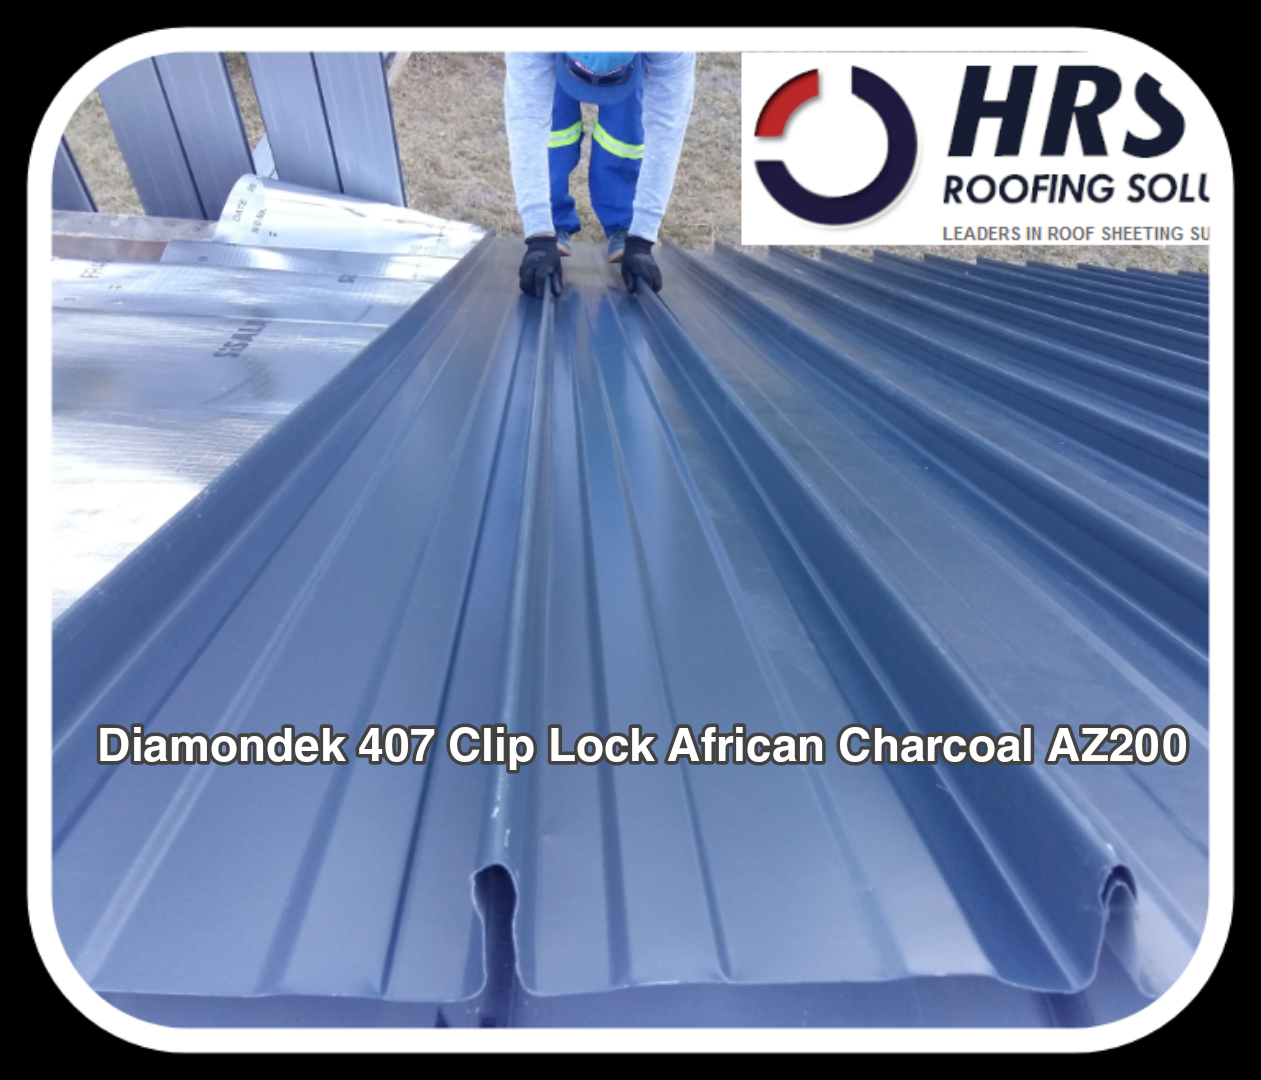 bullnose and cranked roof sheeting cape Town Zincalume Colorbond hrs roofing 2 - Roofing Gallery